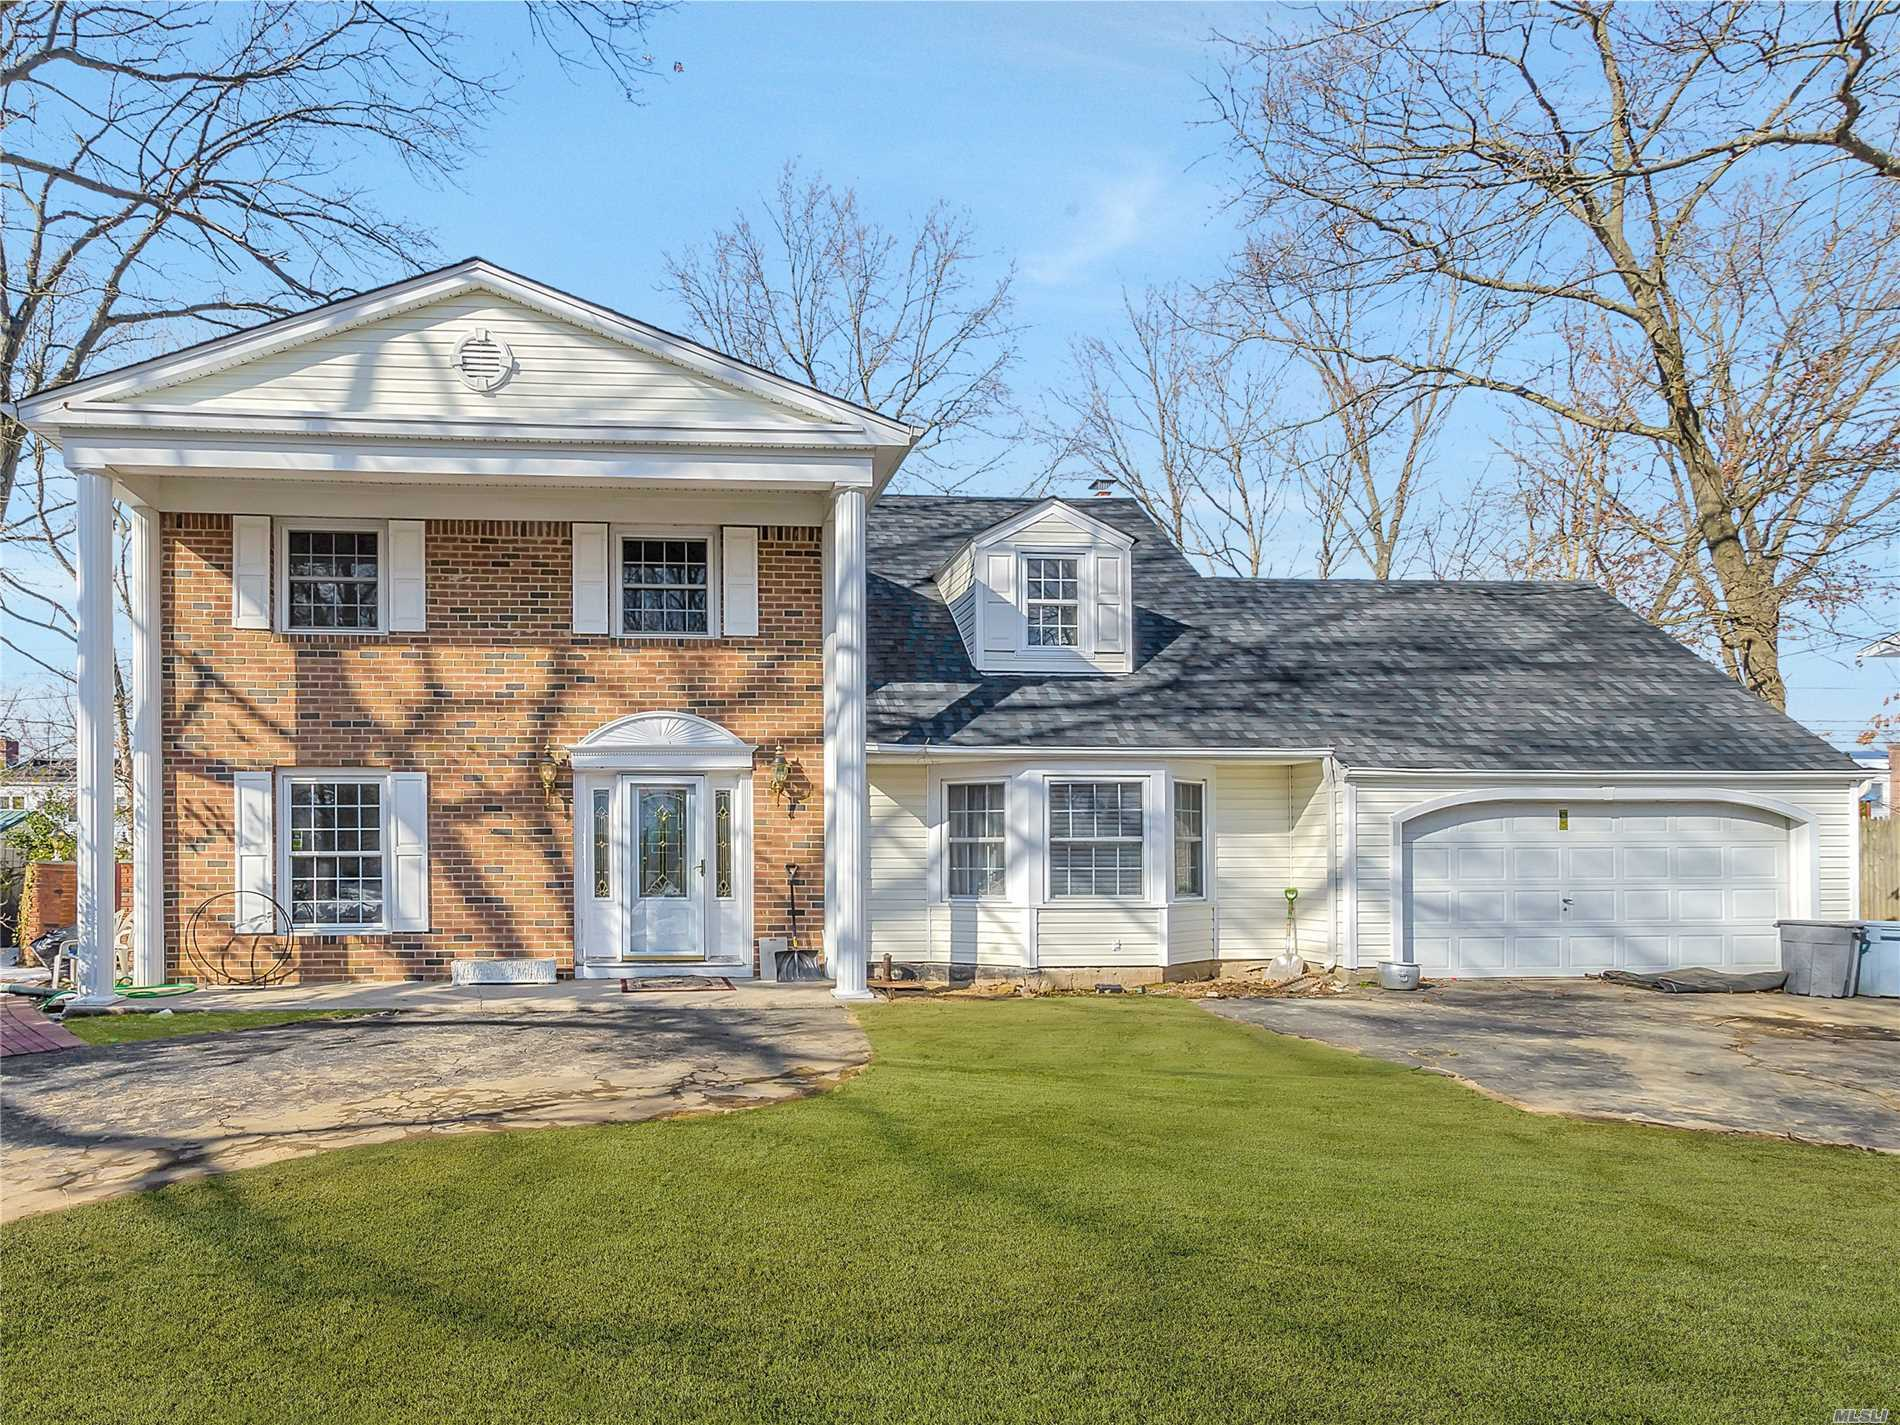 Fabulous 9 Room Colonial in Birchwood! This home features oak floors, ceramic kitchen and baths, brick fplce,  new hall bath, mostly updated windows, new roof and cesspool - duct work is in for CAC. Family Room and kitchen access Country Club yard saltwater pool - new liner and custom loop lock cover. Don't Delay!